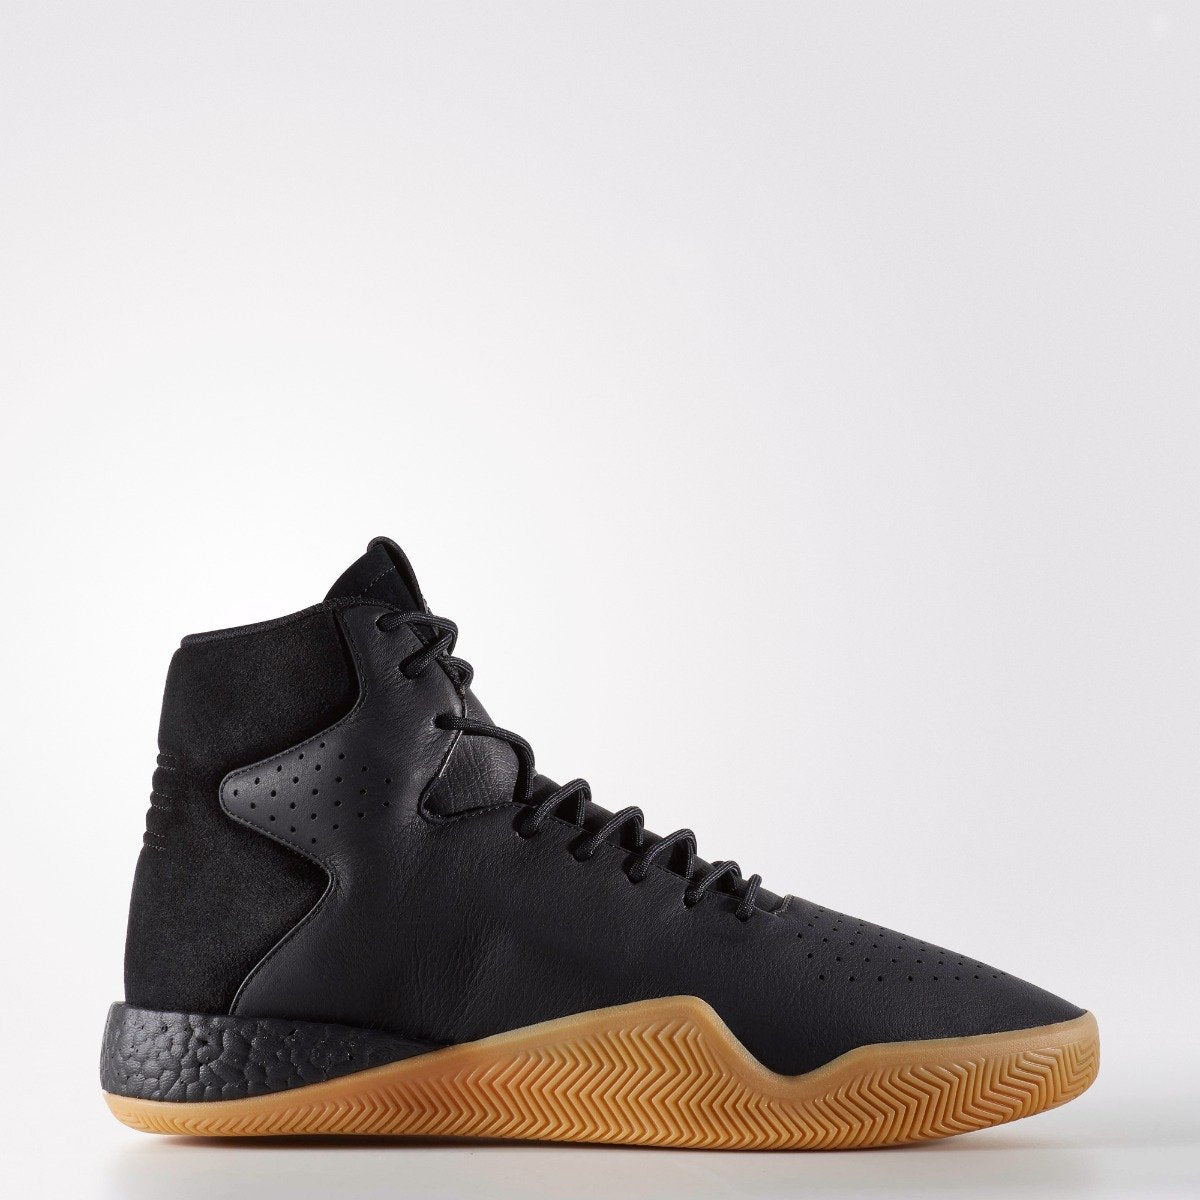 651e4a0333b Men s adidas Originals Tubular Instinct Boost Shoes Black BY3611 ...